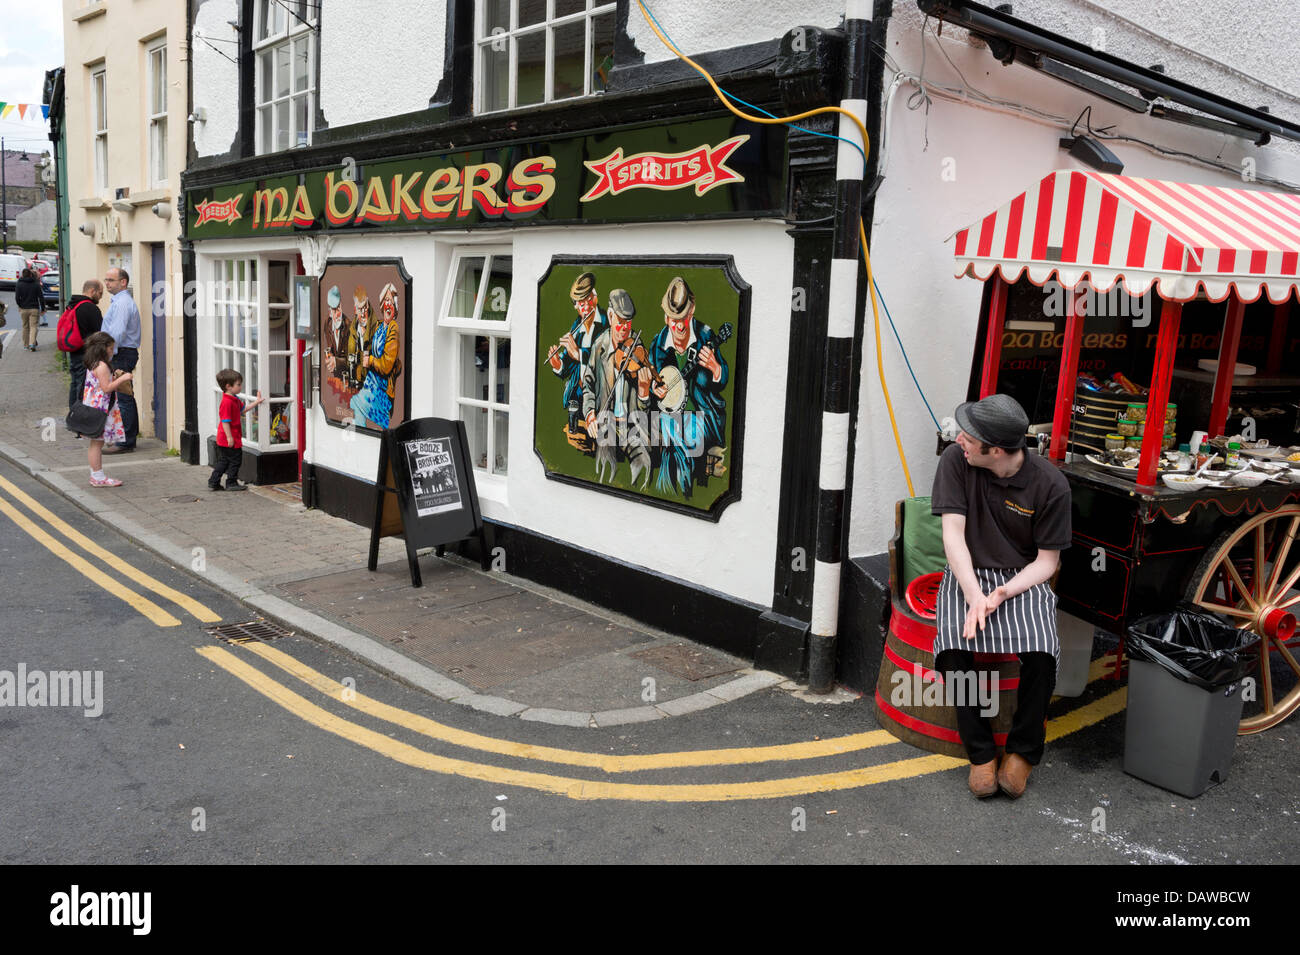 Pub and stall on street corner, at Carlingford Pipe Band Gathering Festival, Carlingford, Irish Republic Stock Photo